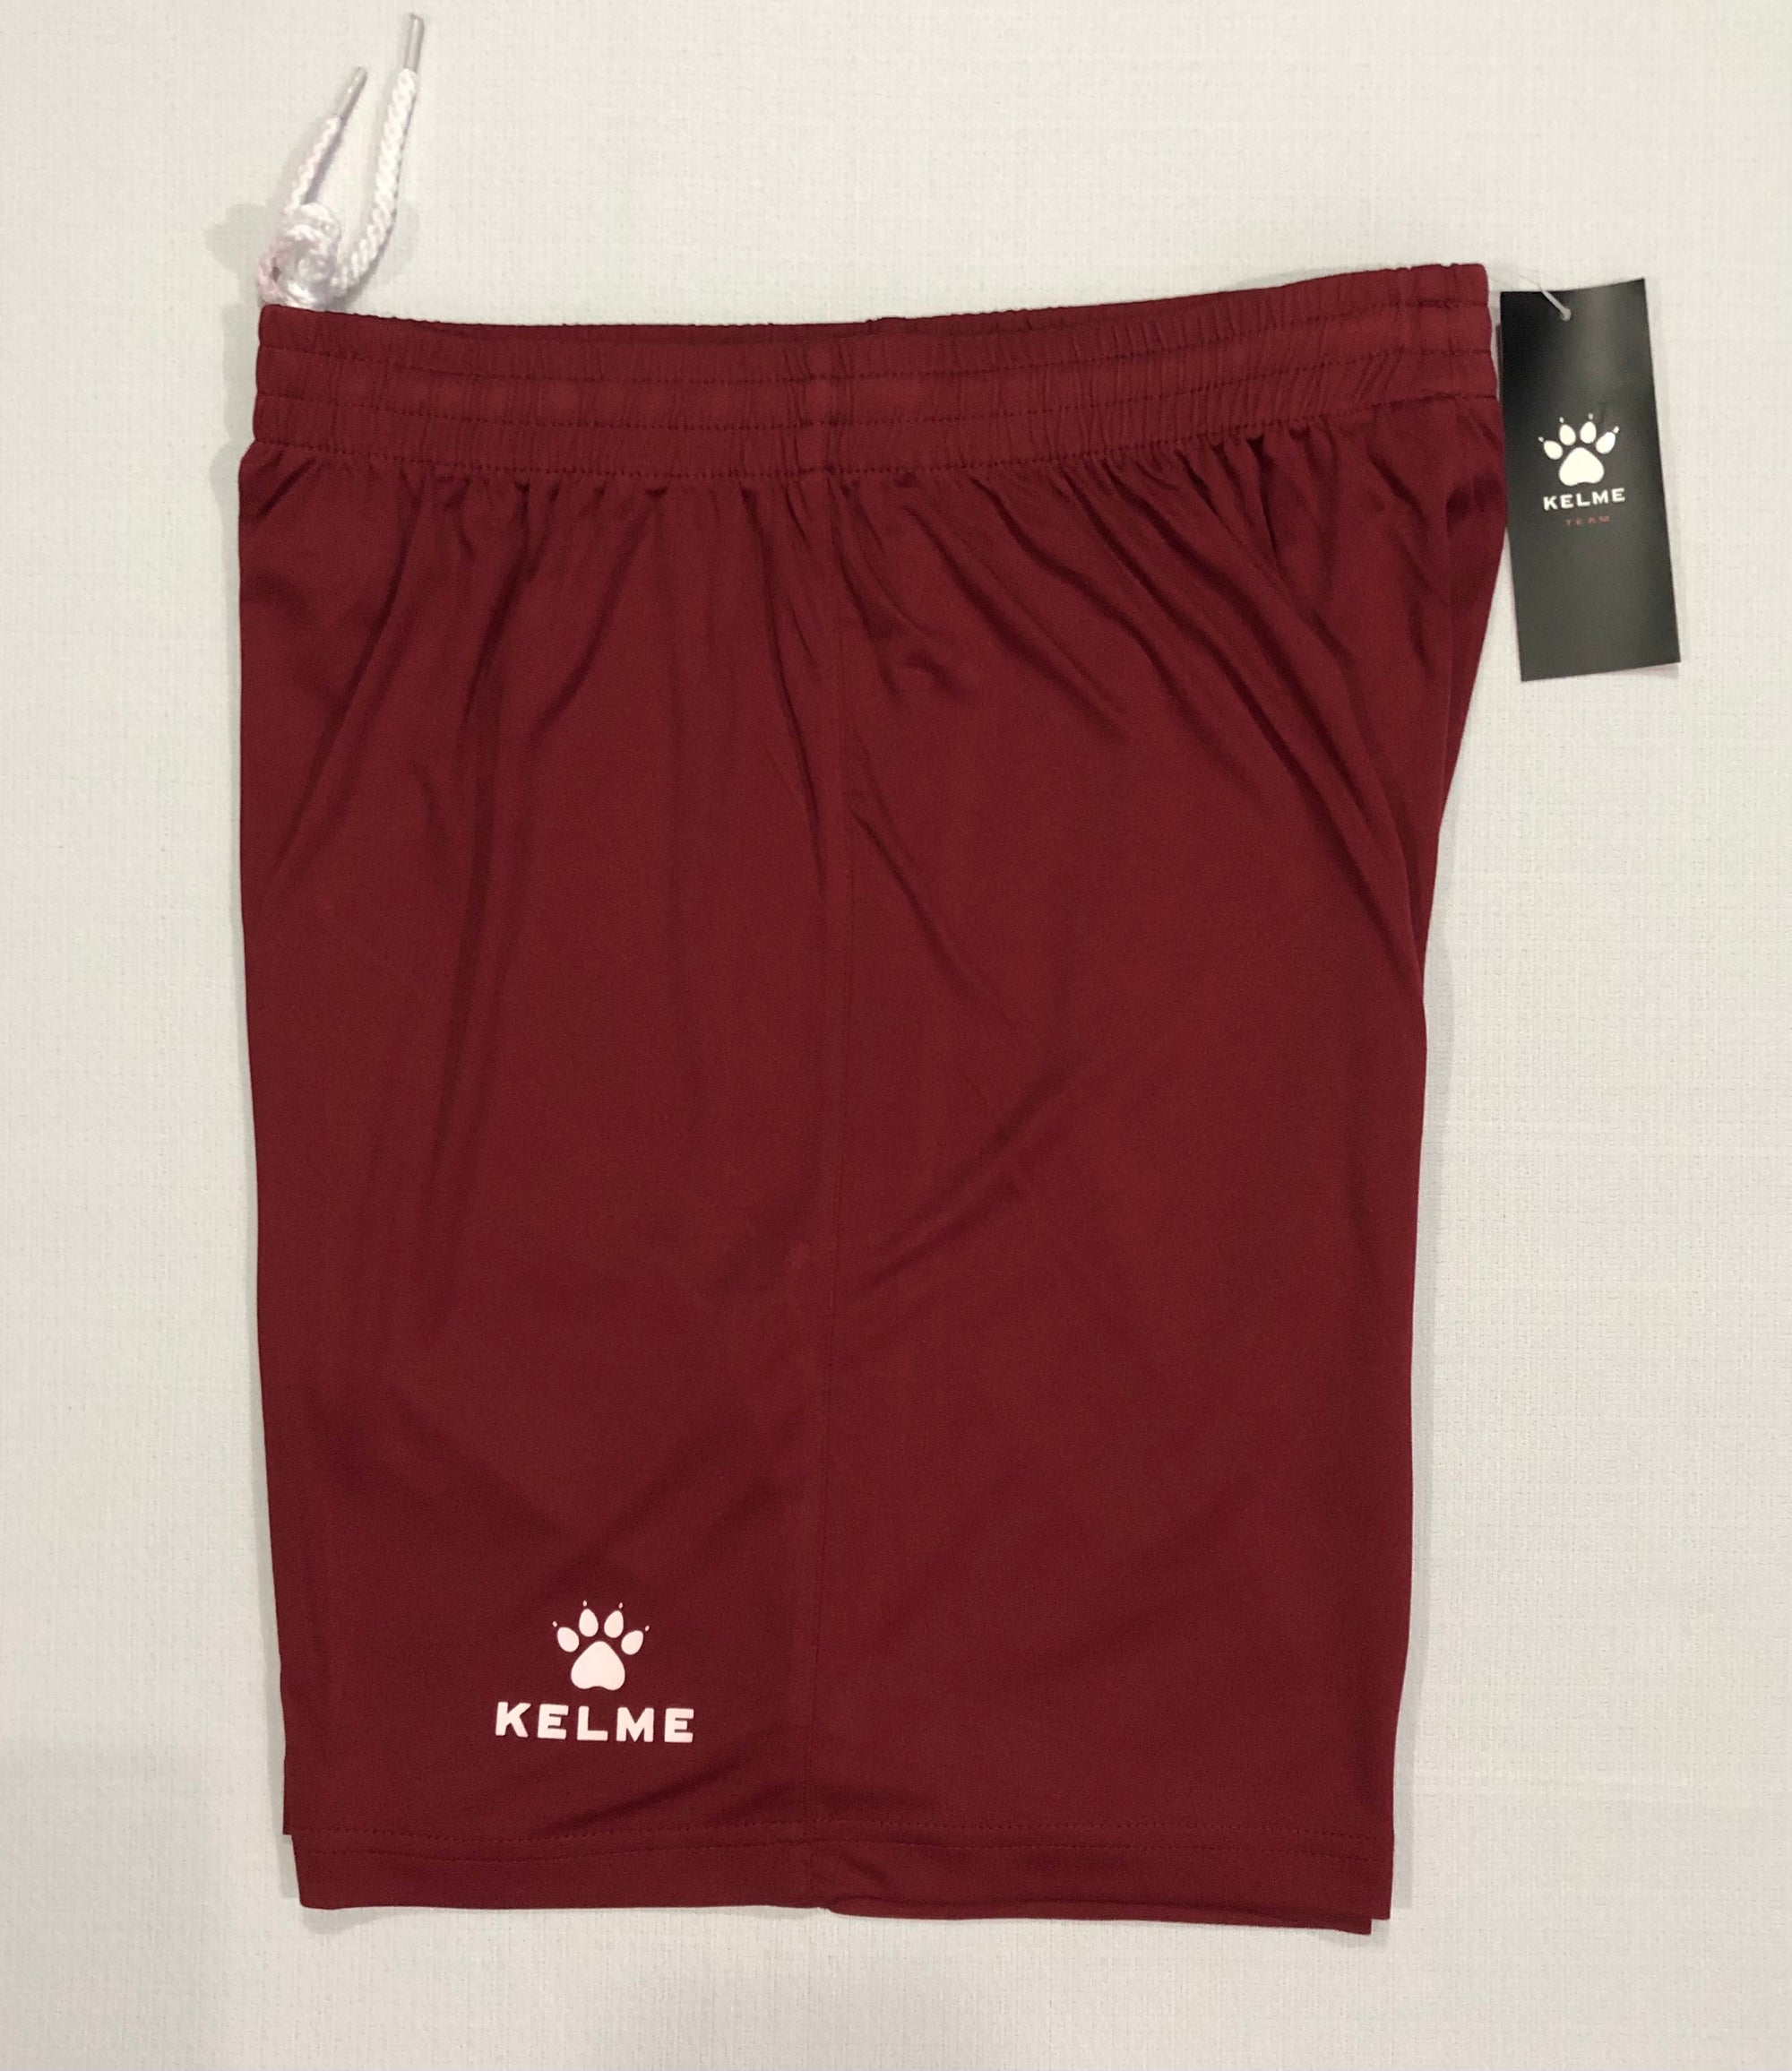 Kelme Adult Short - Burgundy